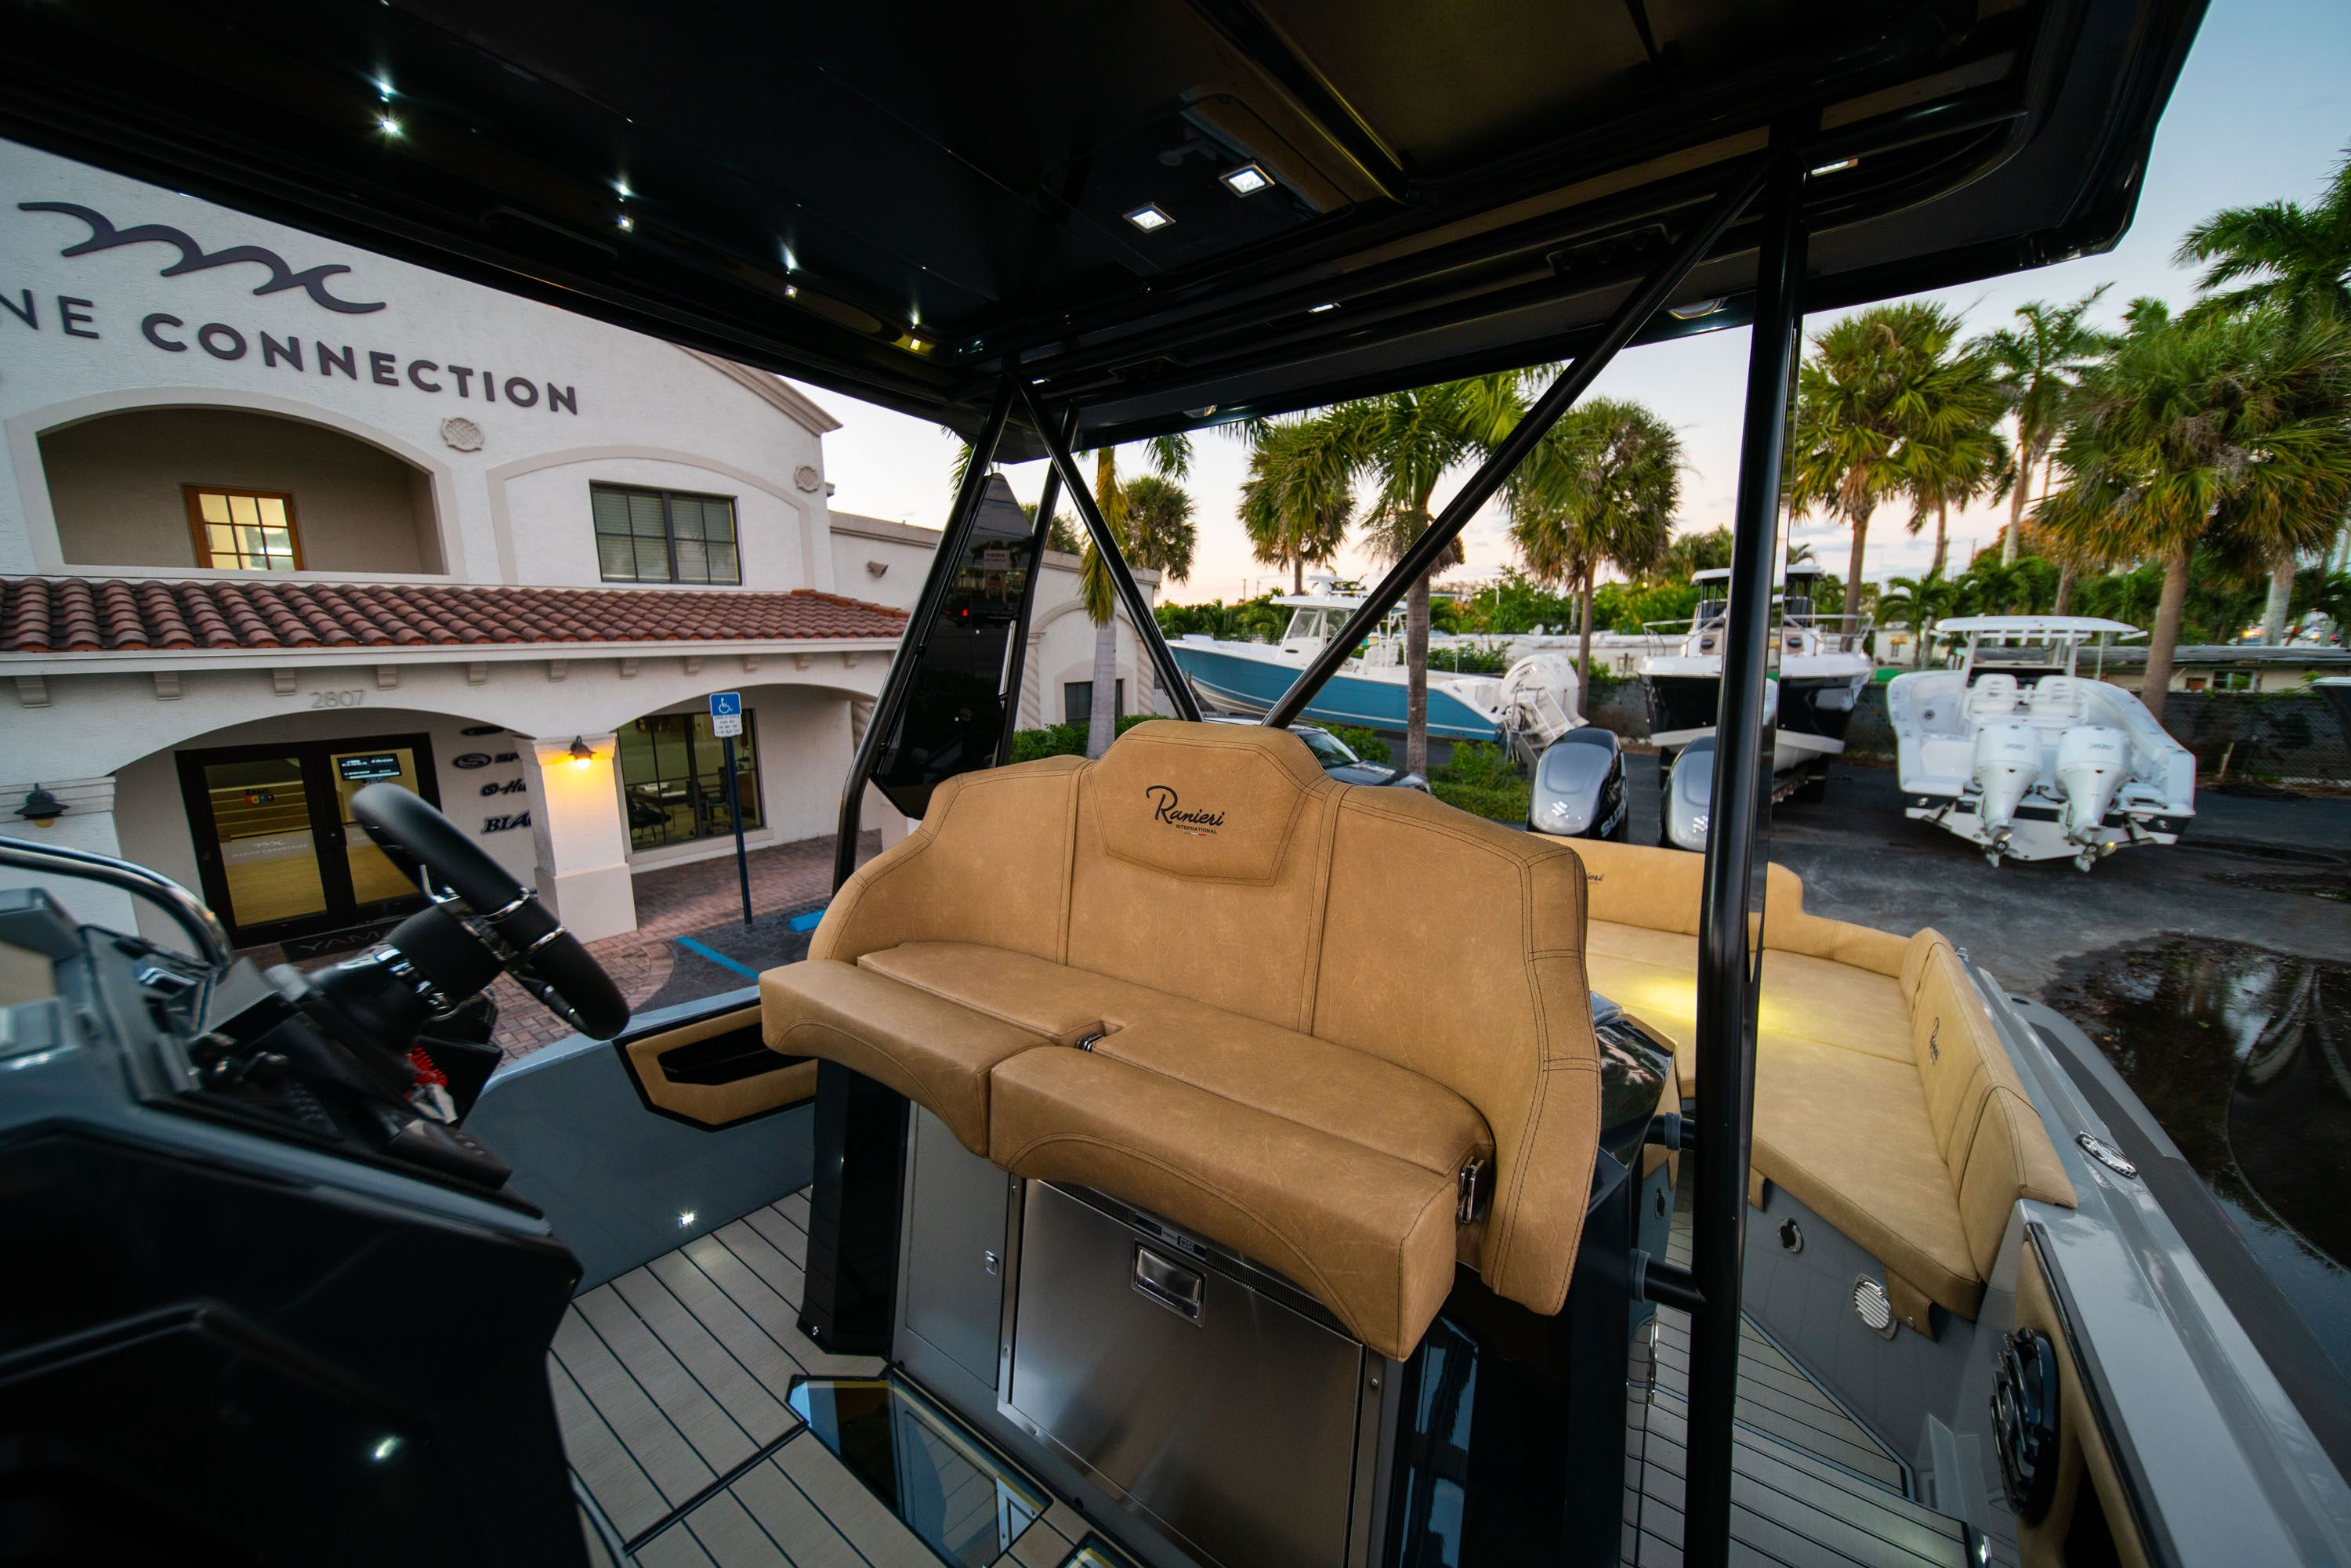 Thumbnail 31 for New 2019 Ranieri Cayman 38 Executive boat for sale in West Palm Beach, FL